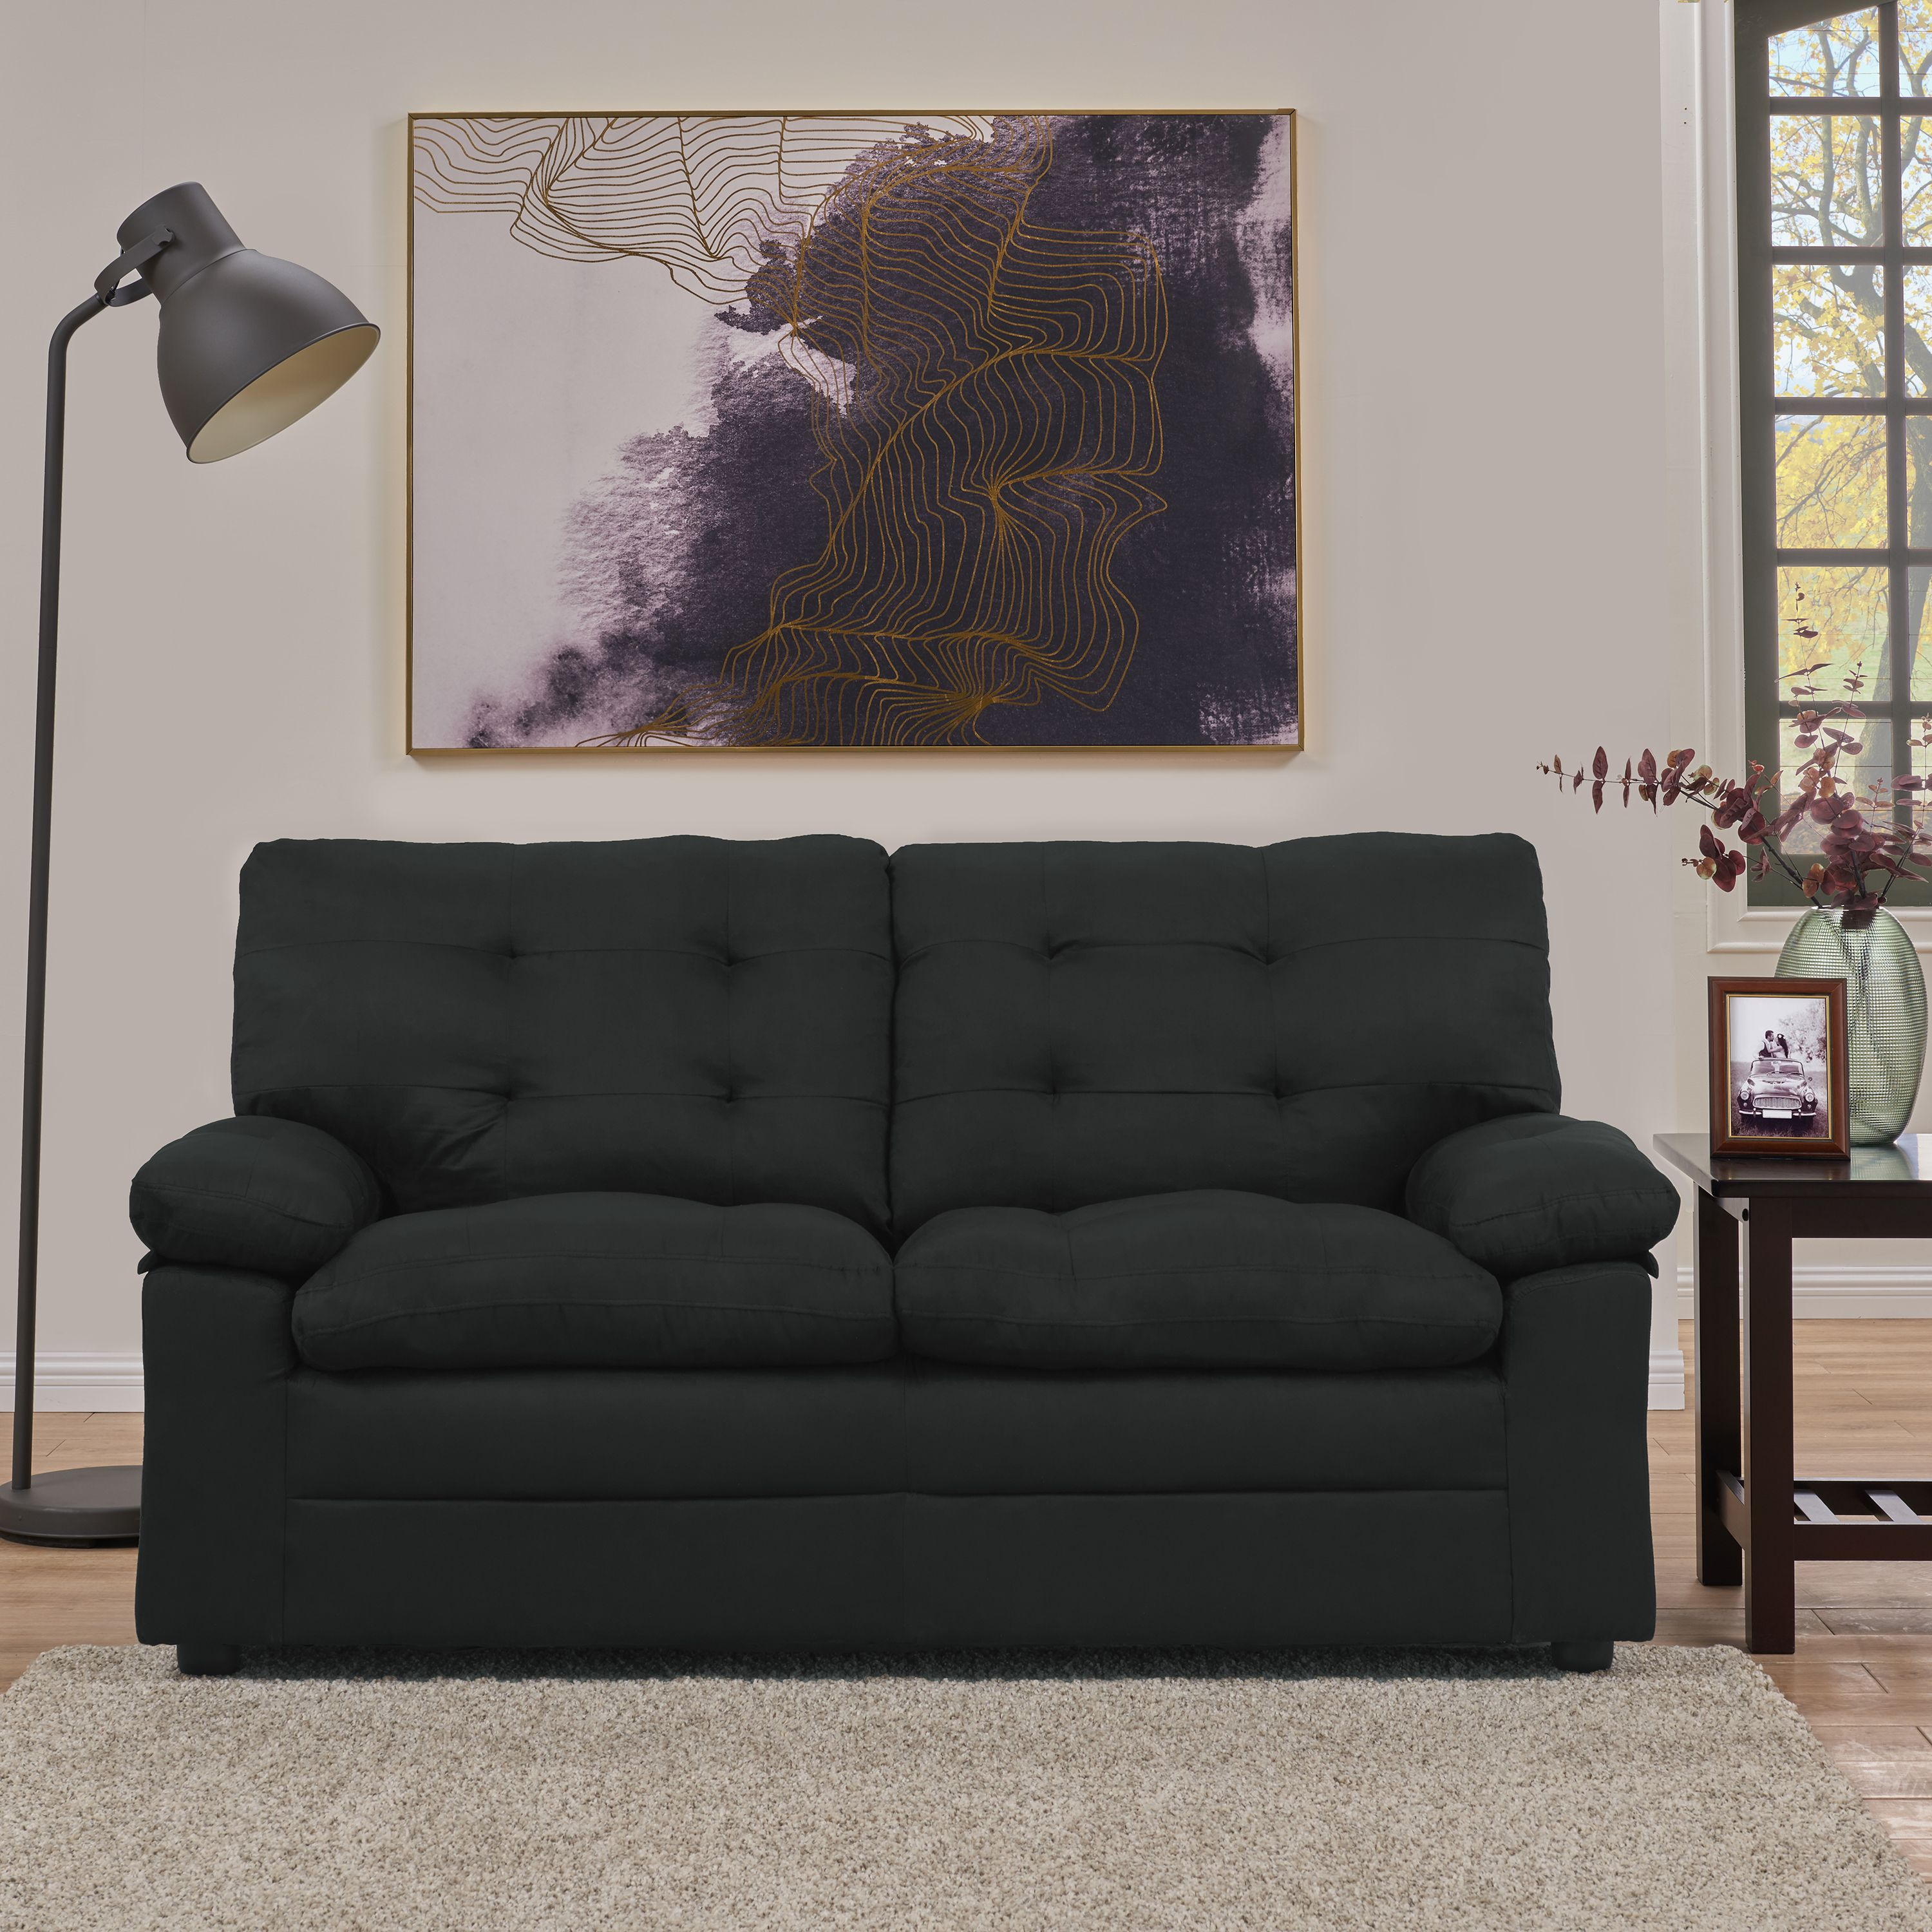 Mainstays Buchannan Upholstered Apartment Sofa, Black Image 4 Of 4